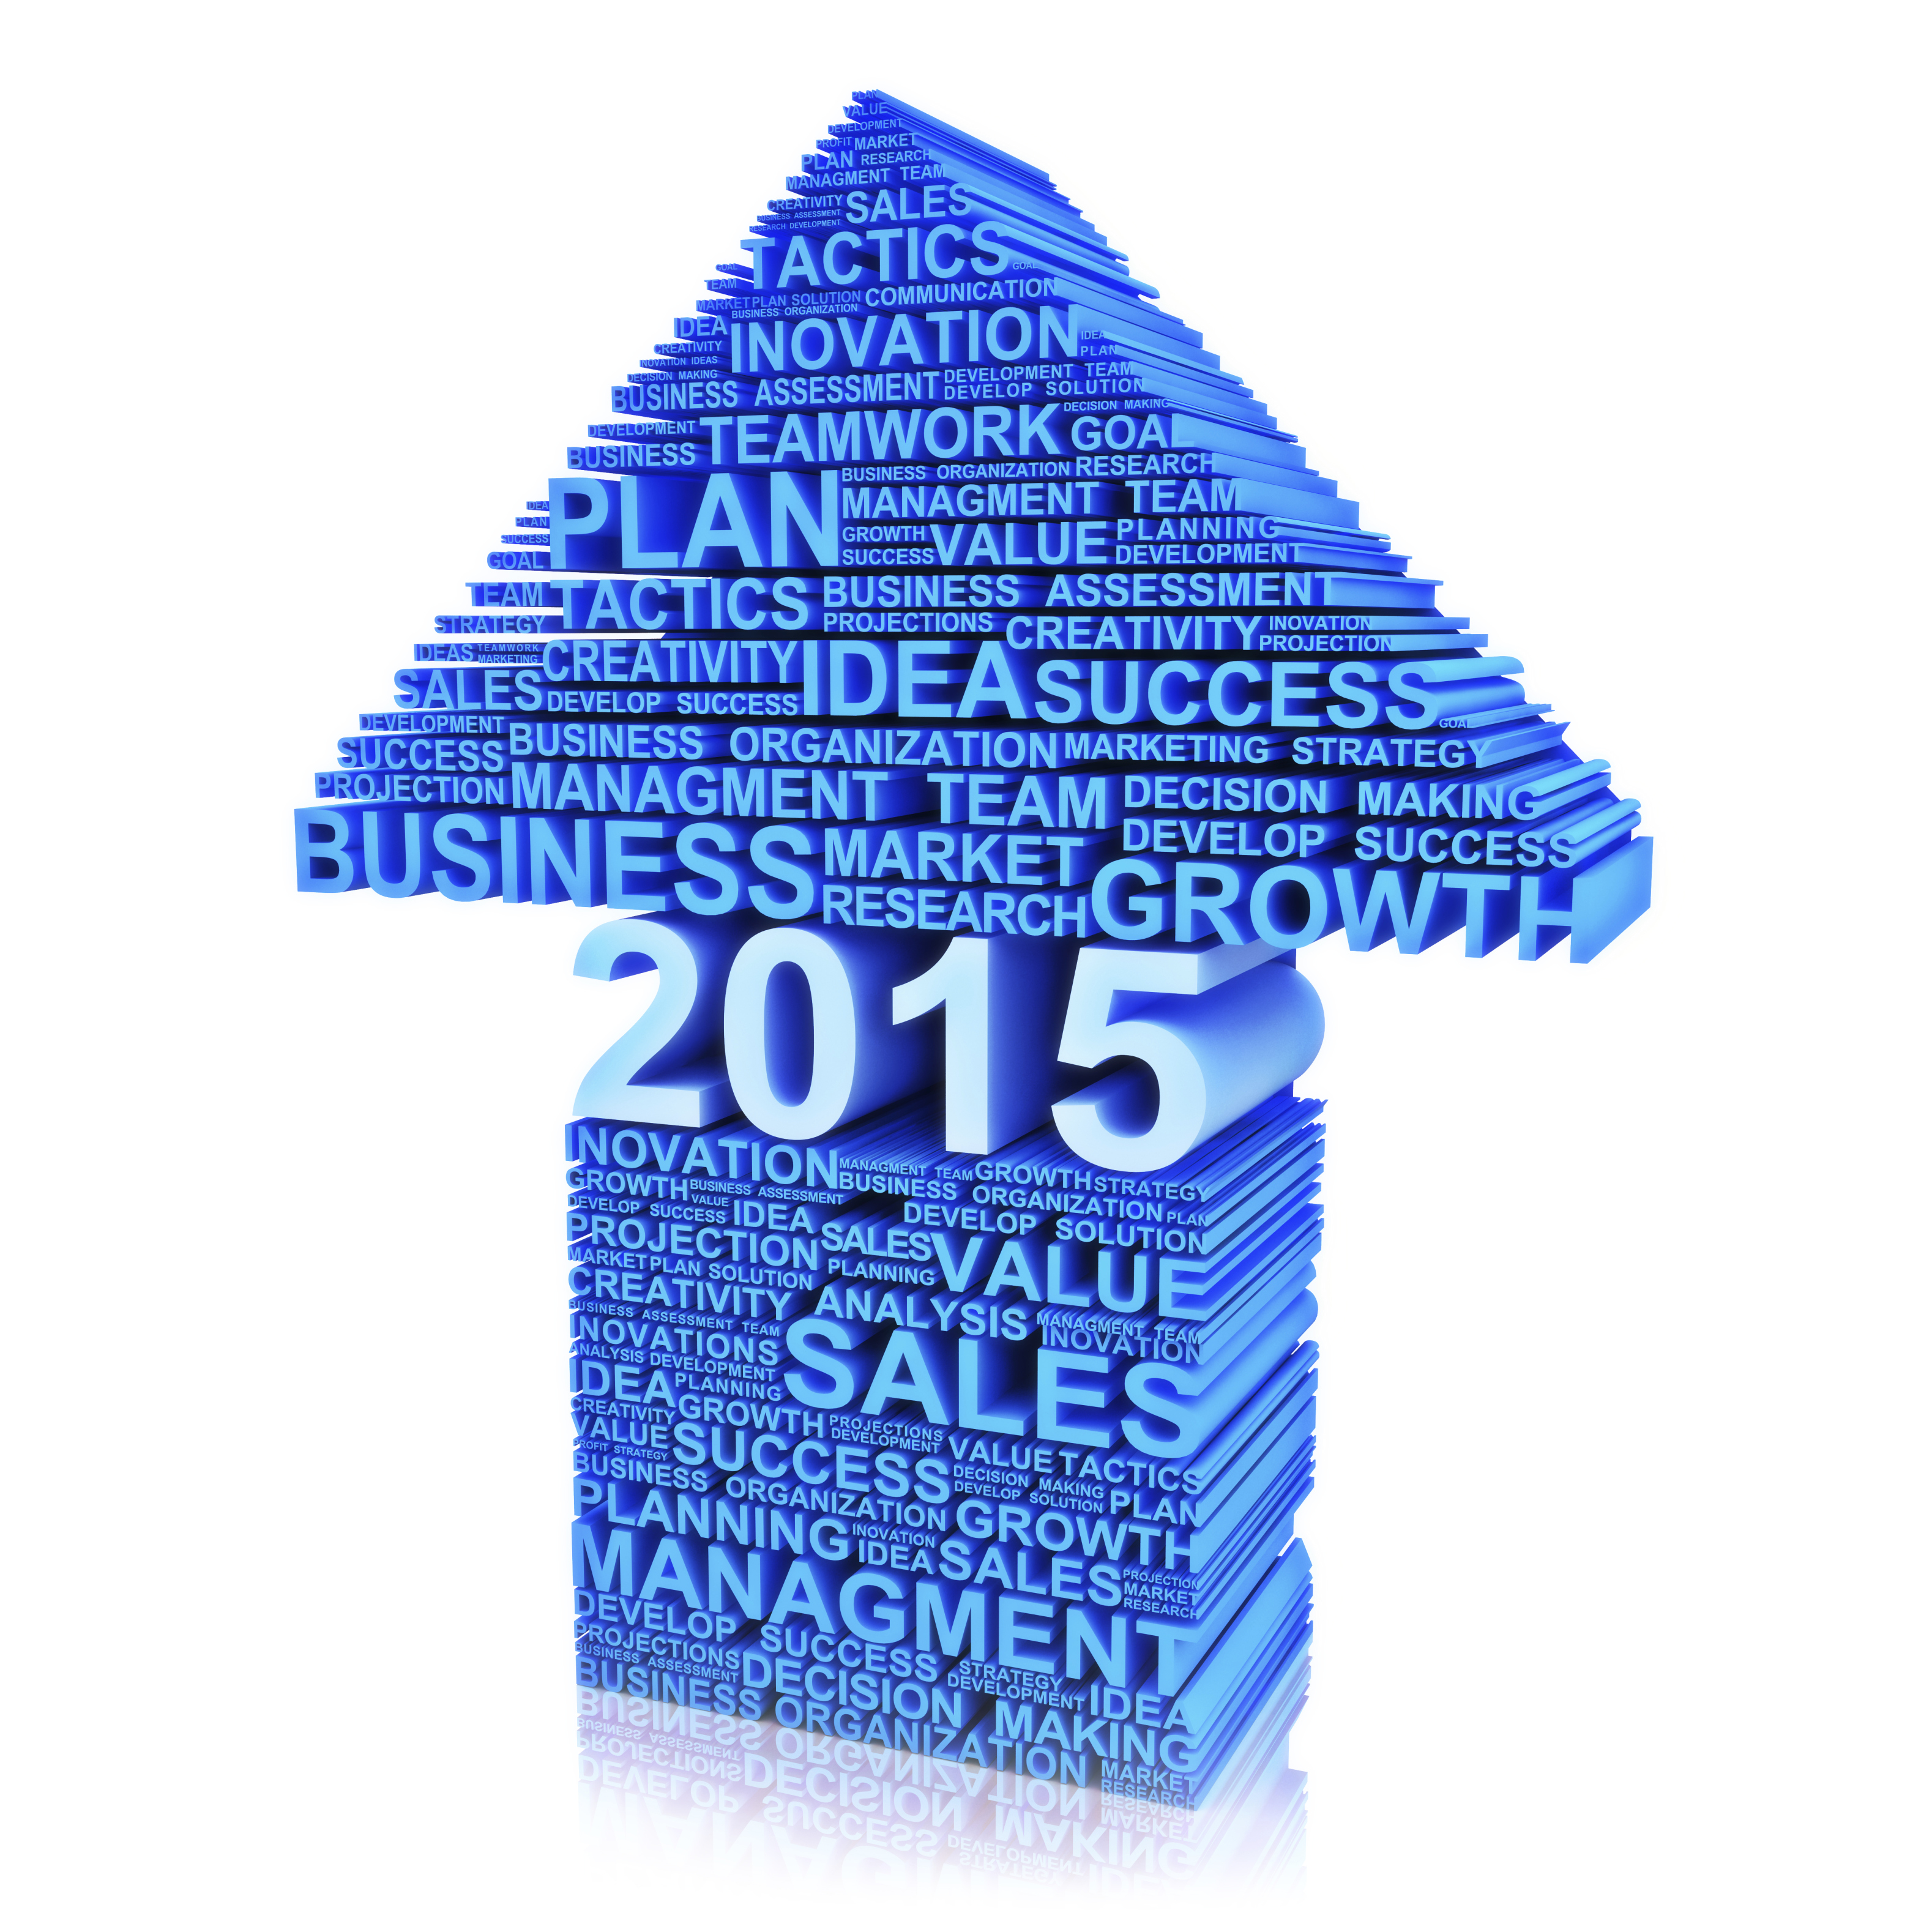 Marketing Your Financial Advisory Firm in 2015